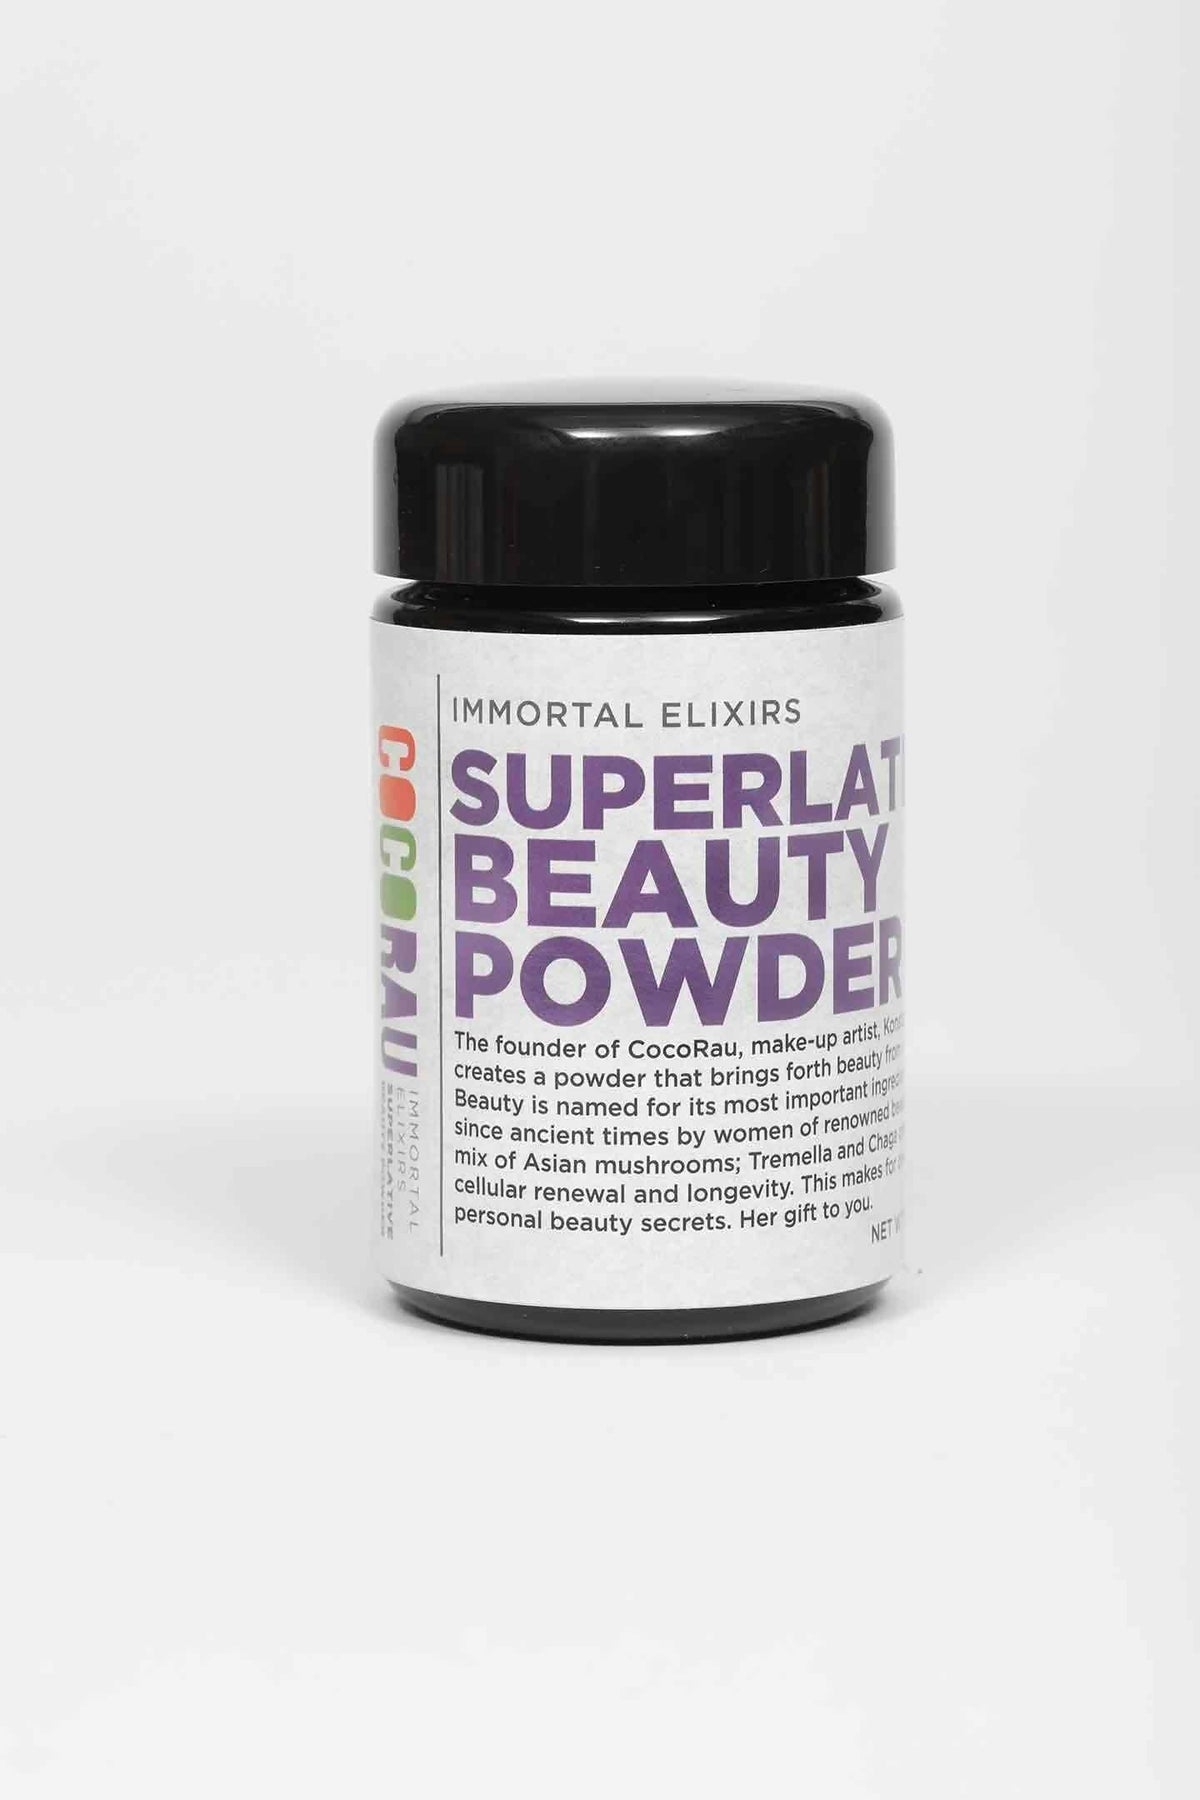 SUPERLATIVE BEAUTY POWDER